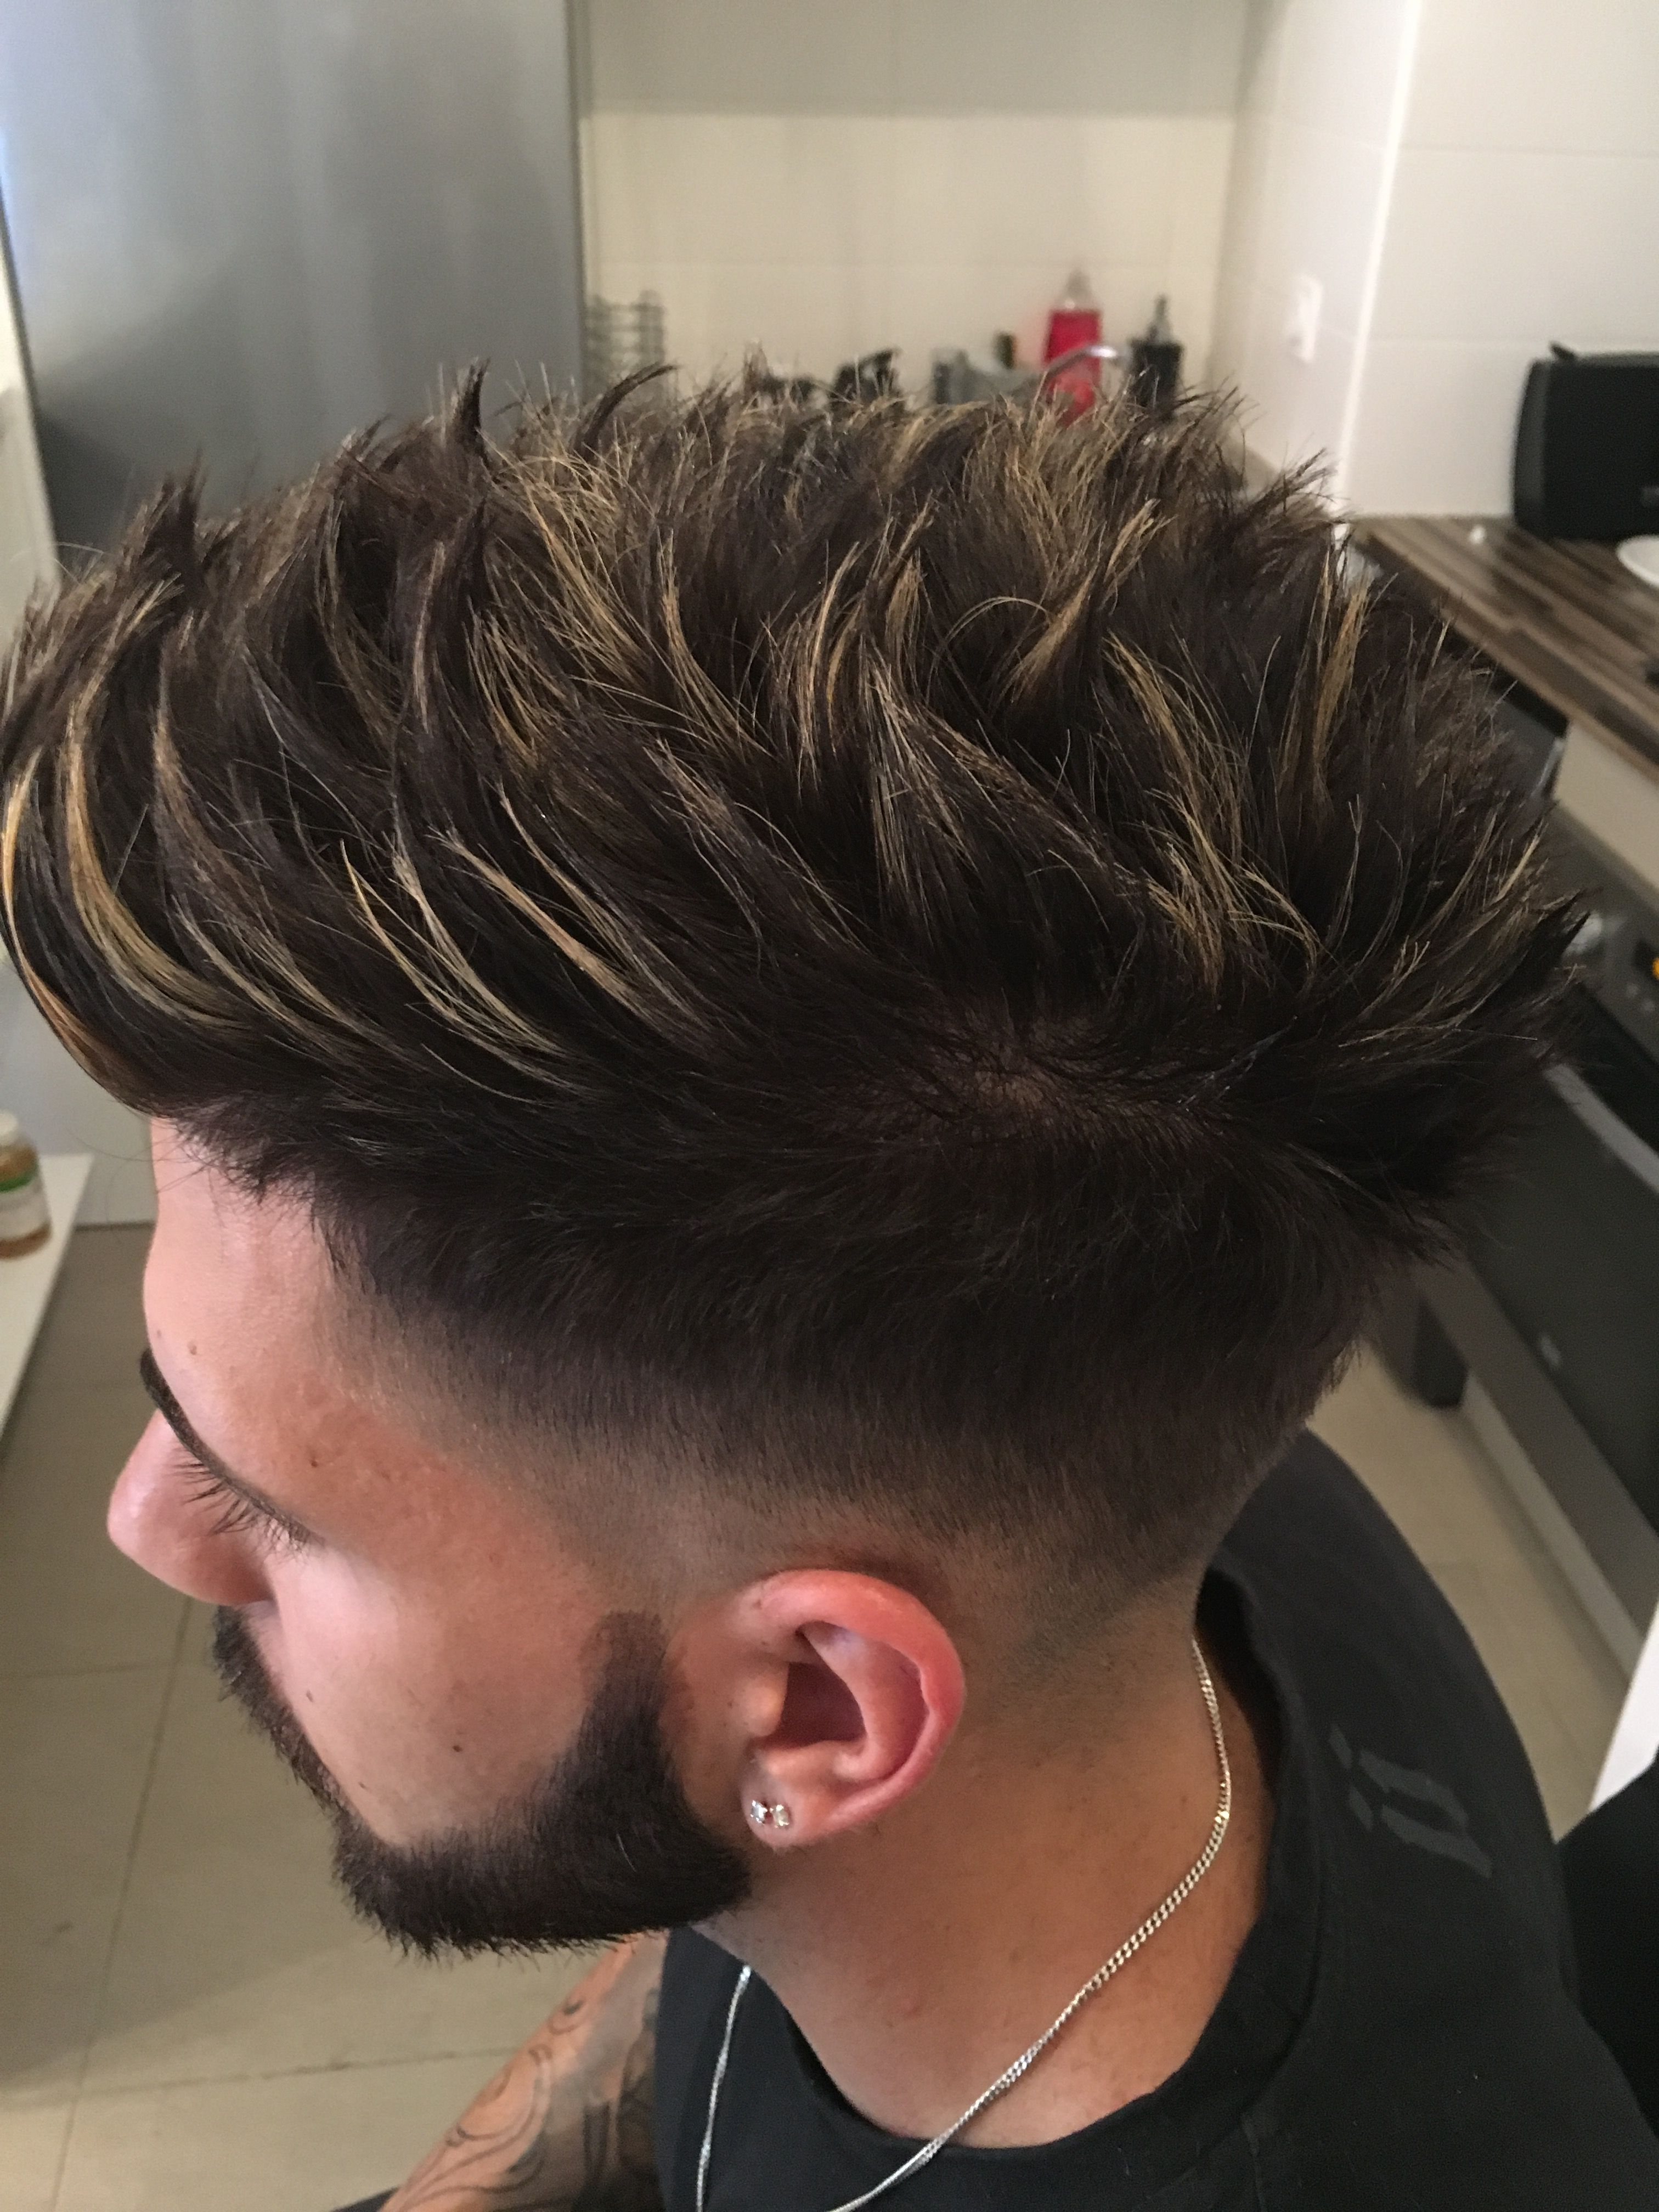 Pin By Theo Abadi On 0 0 Gents Hair Style Colored Hair Tips Comb Over Fade Haircut